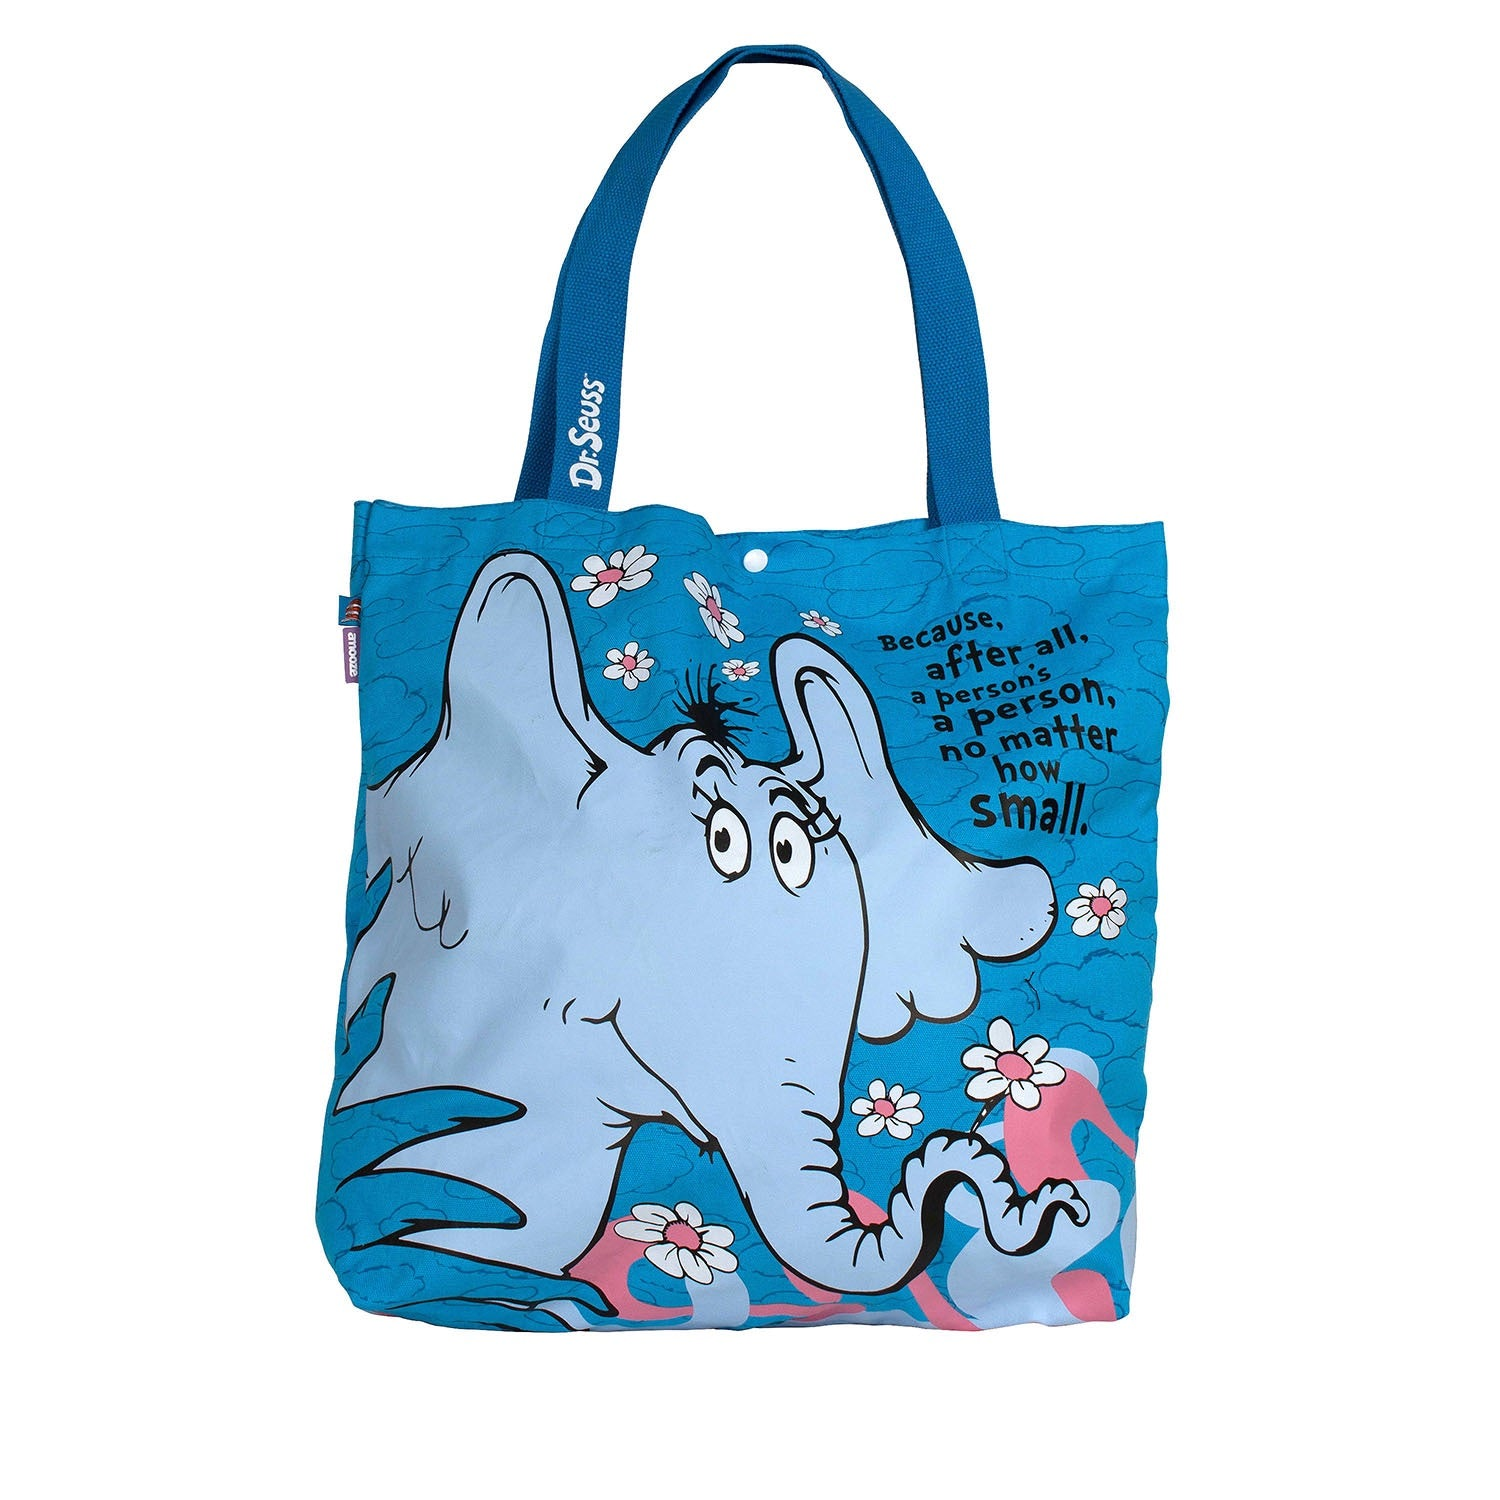 Amooze - Dr Suess - Horton Hears A Who - Tote